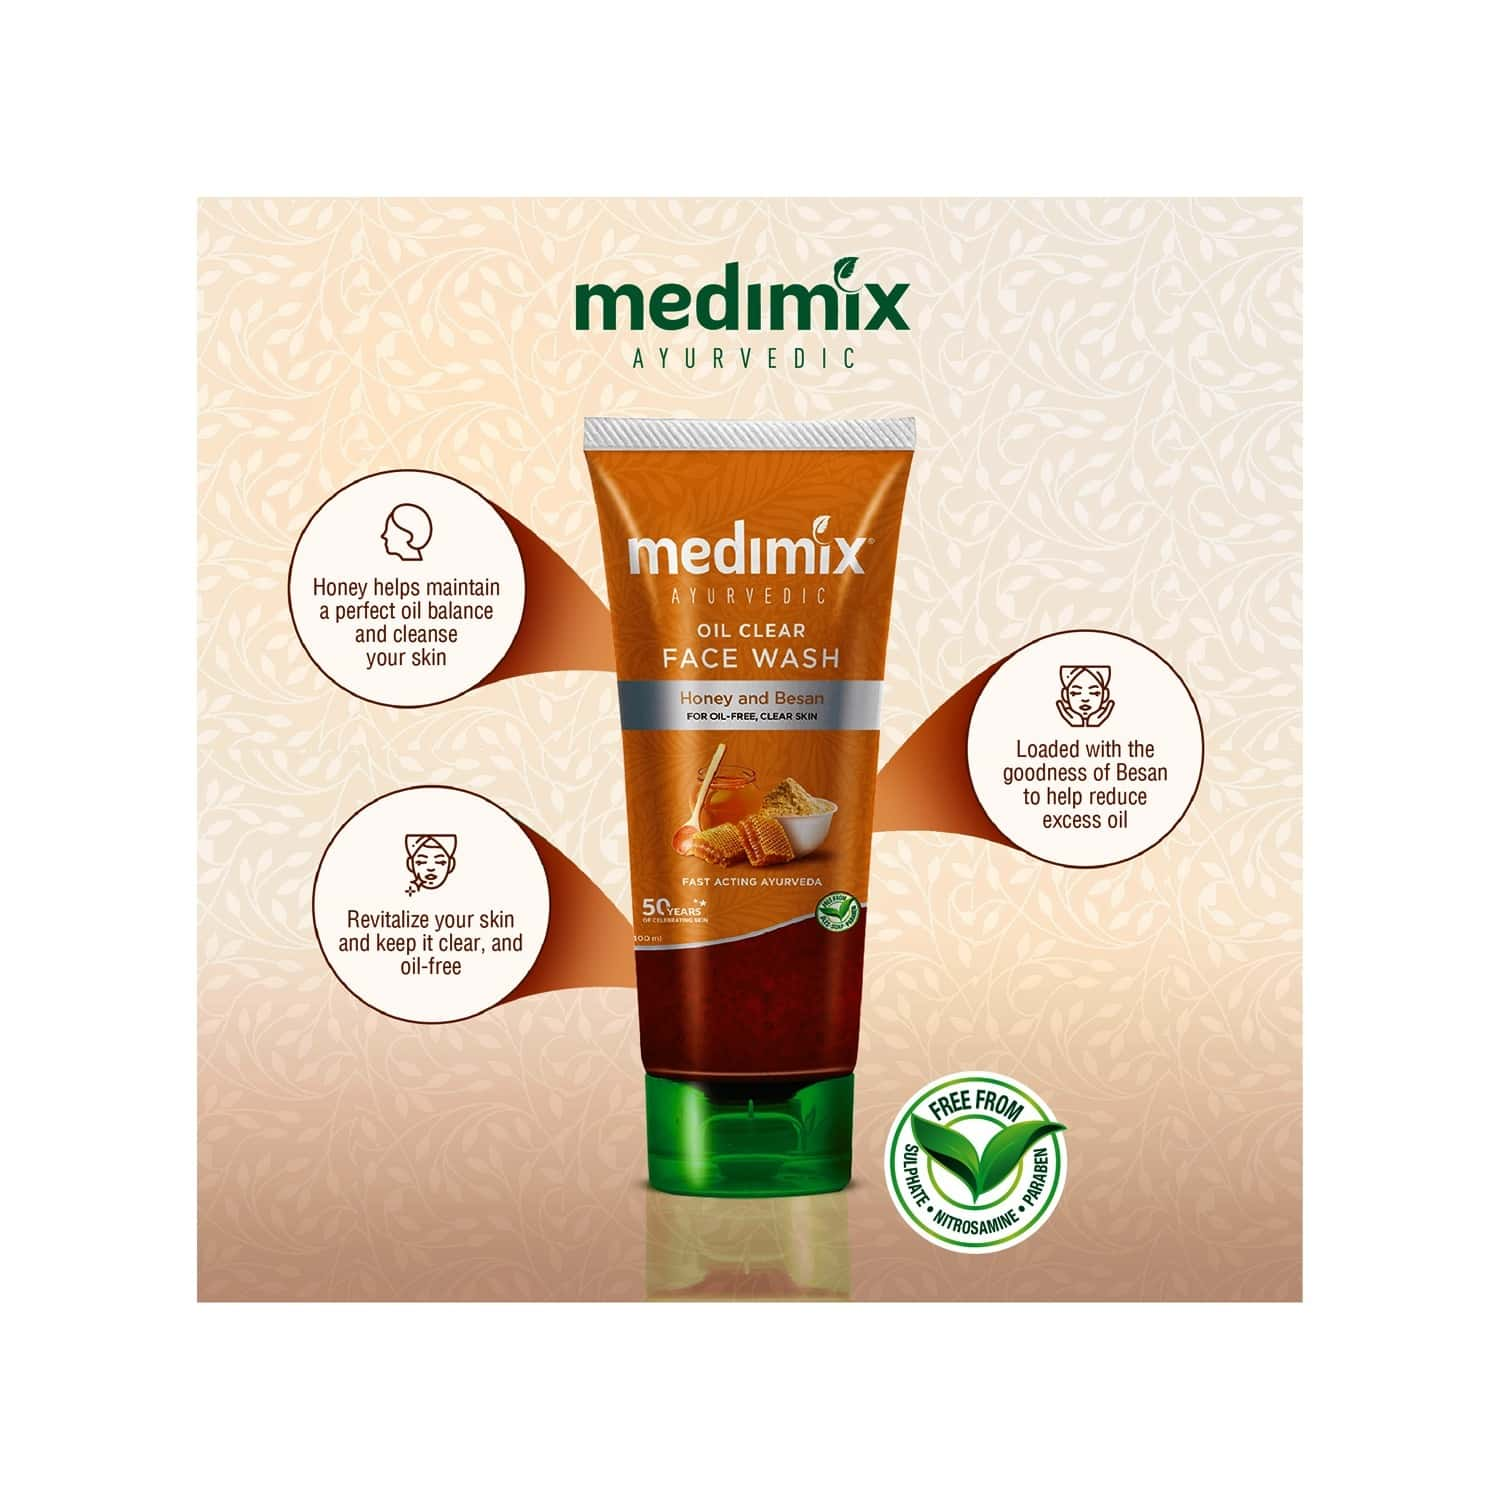 Medimix Ayurvedic Oil Clear Face Wash - 100ml